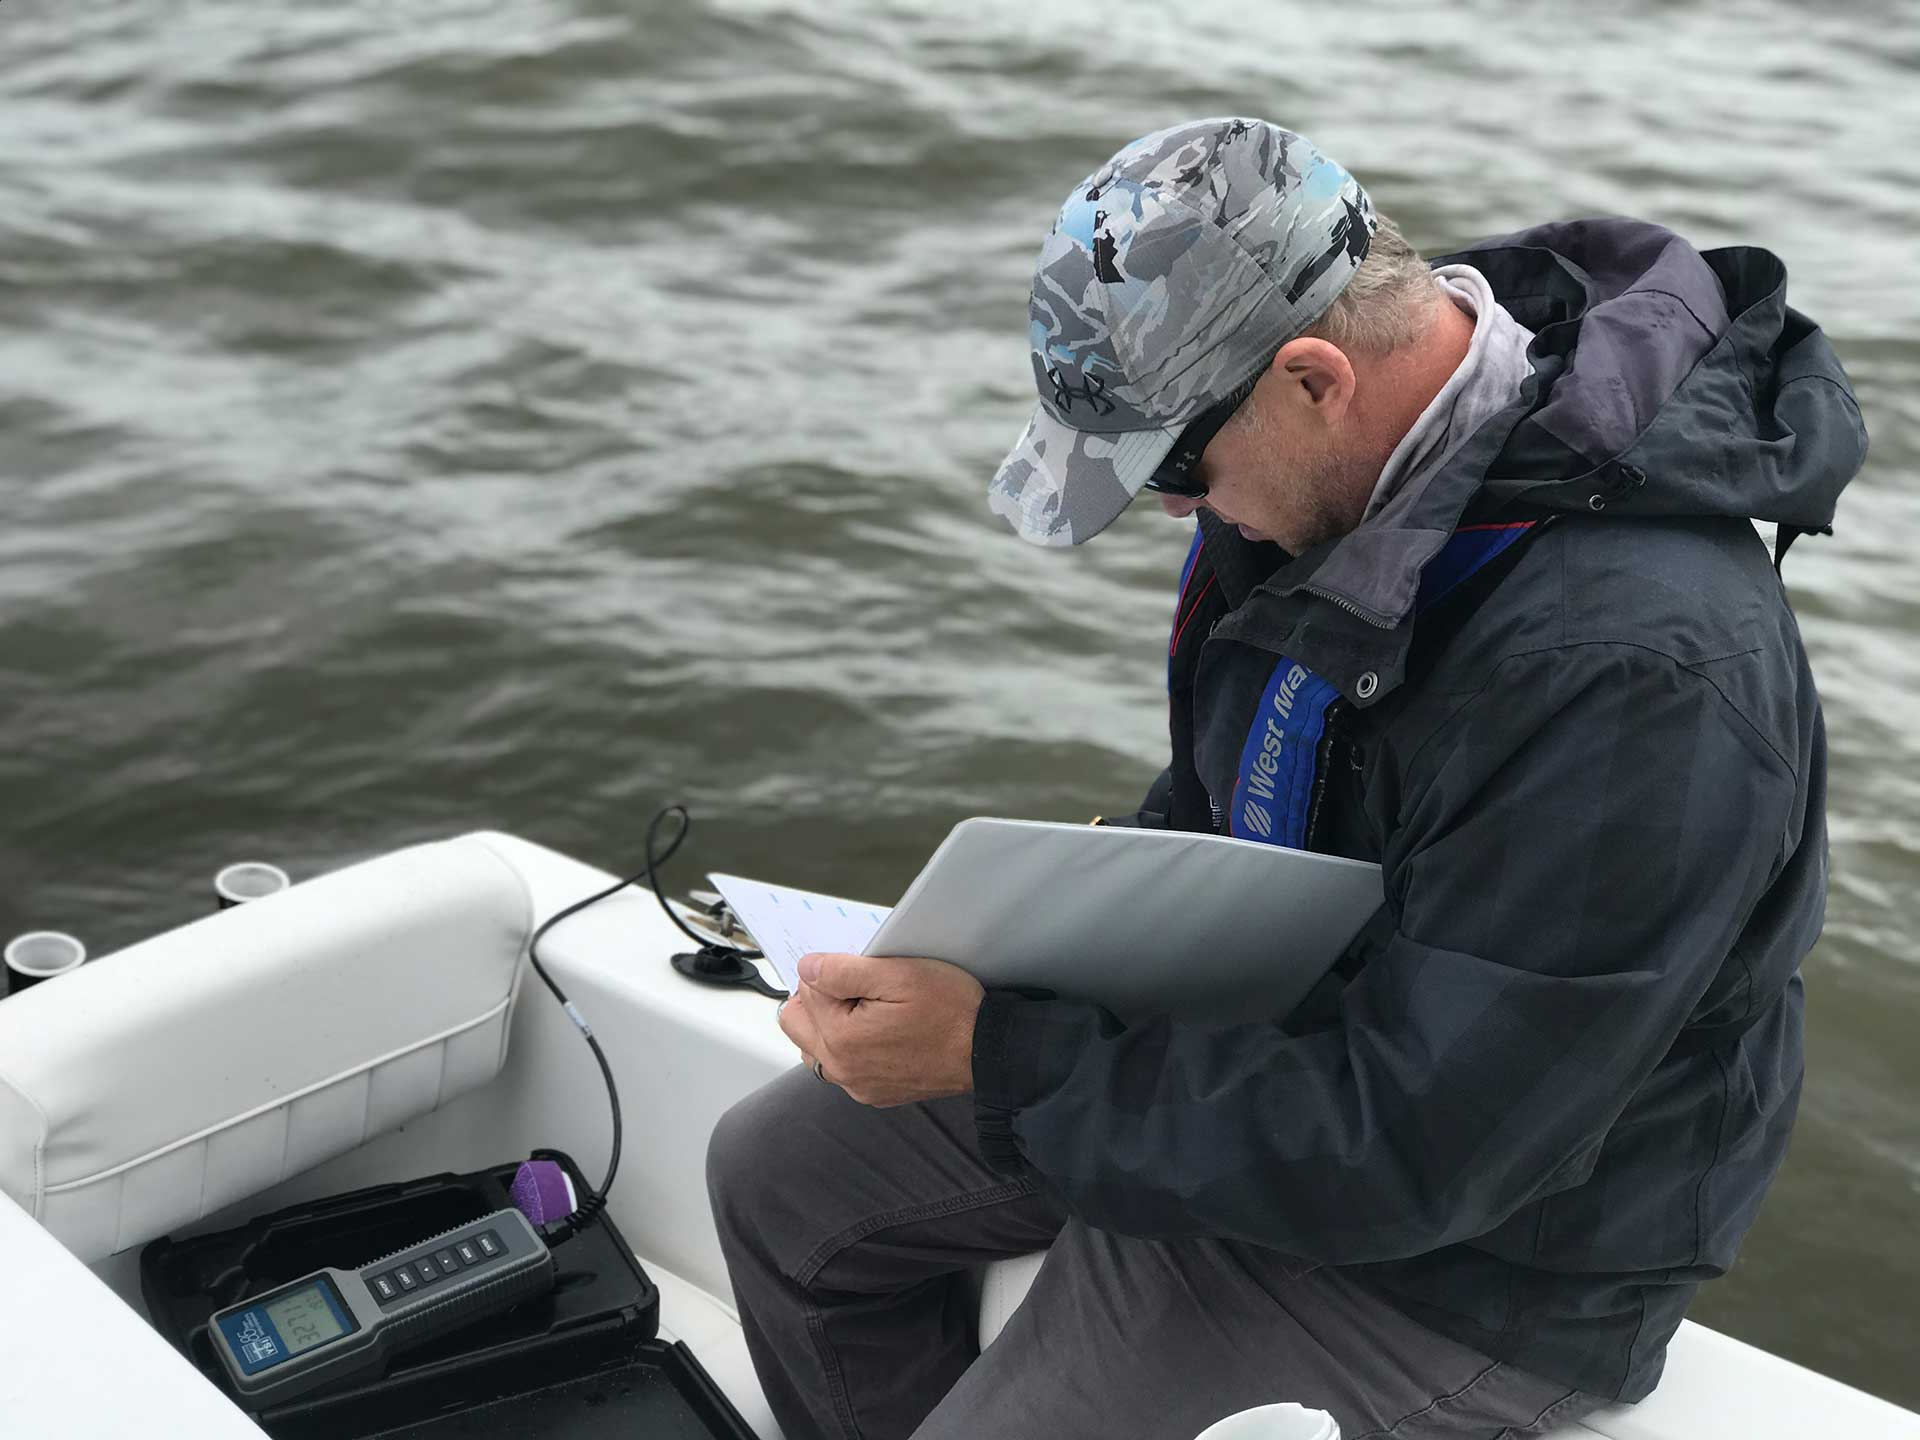 Taking water quality samples for a biological study in North Carolina's Outer Banks.